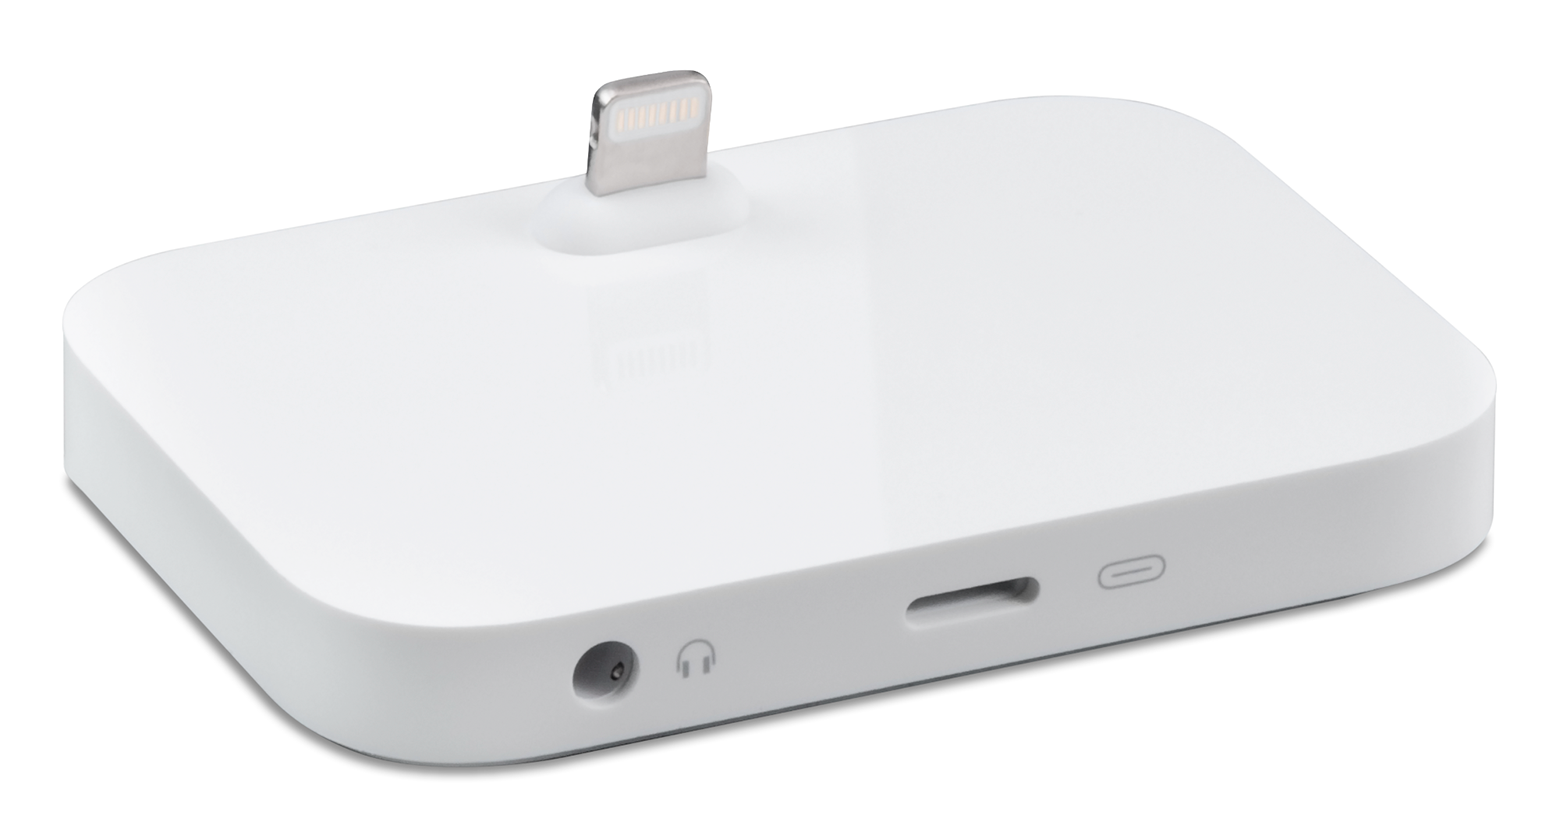 About The Apple Lightning Docks Apple Support